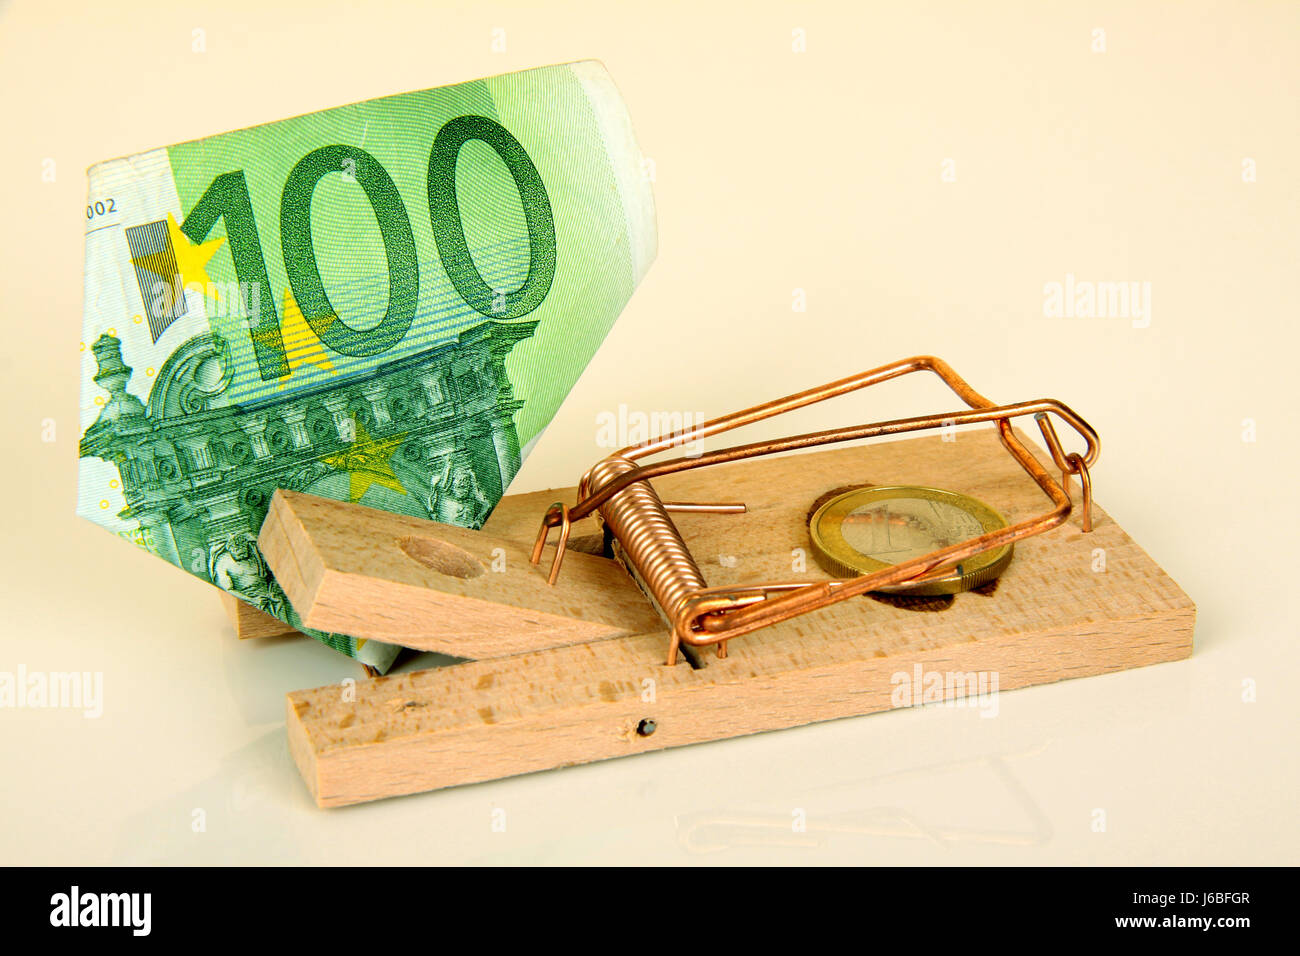 bank note cases trap click bank lending institution danger contract macro Stock Photo